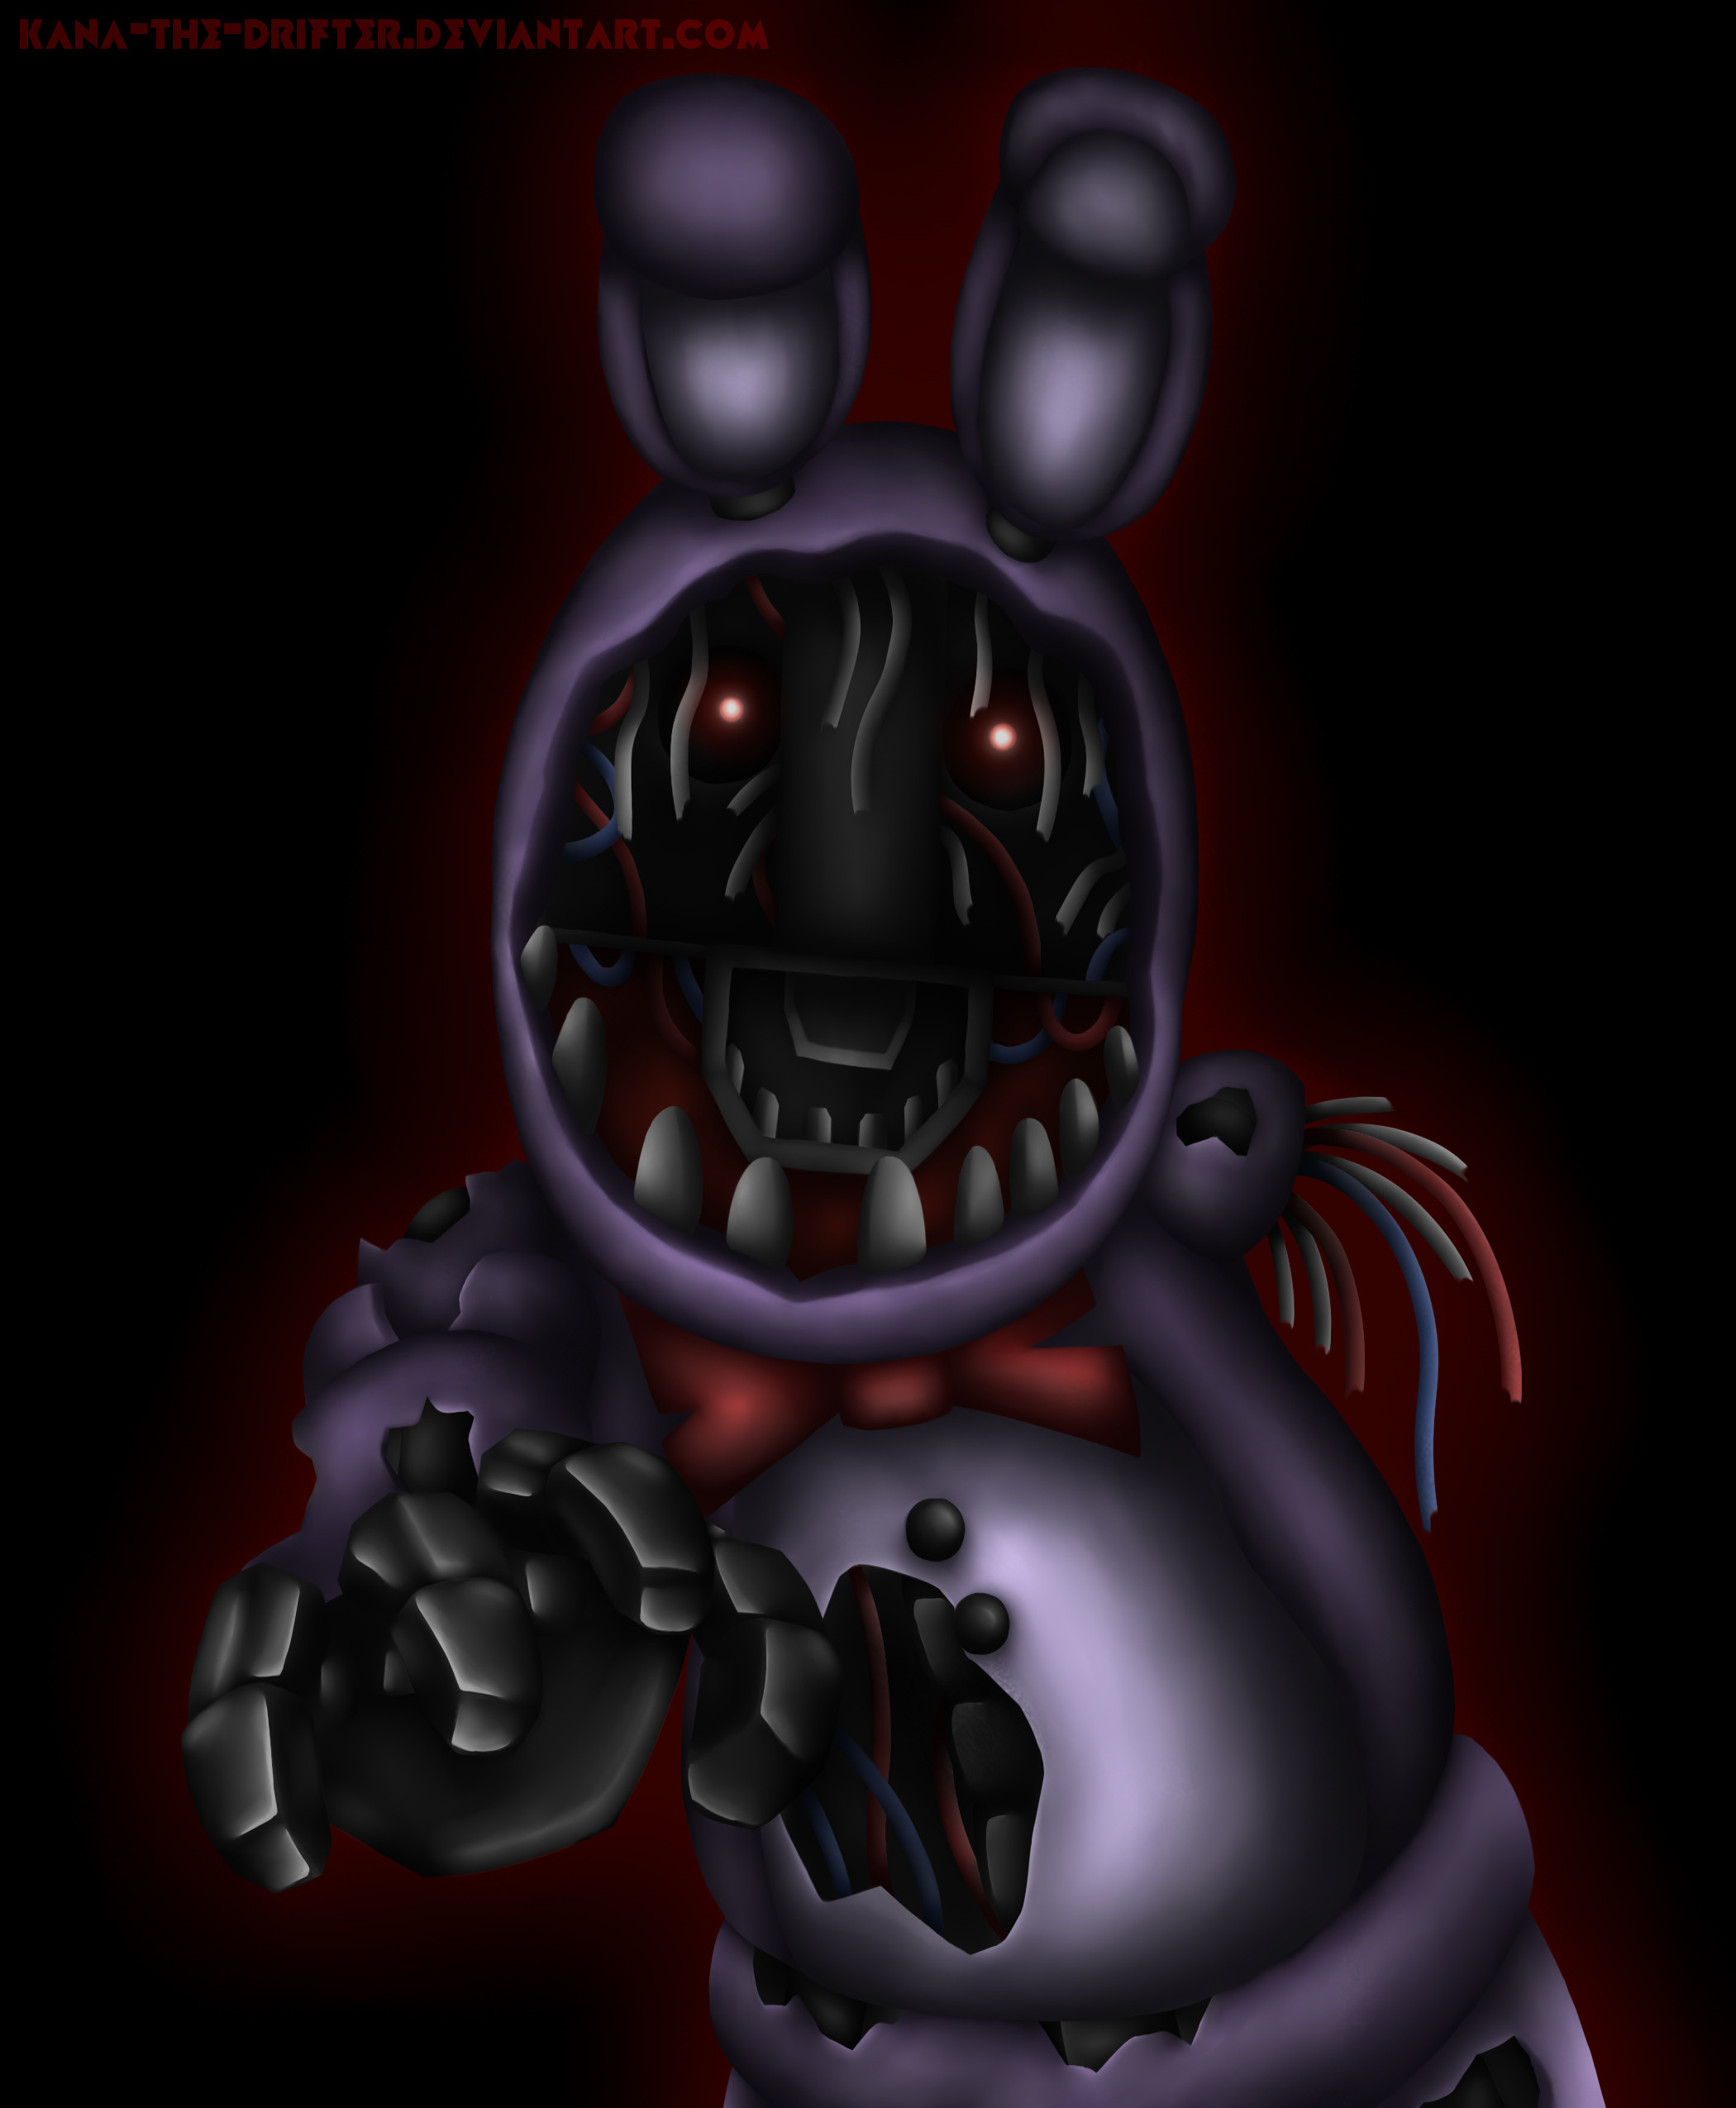 Bonnie The Bunny Wallpaper (81+ Images